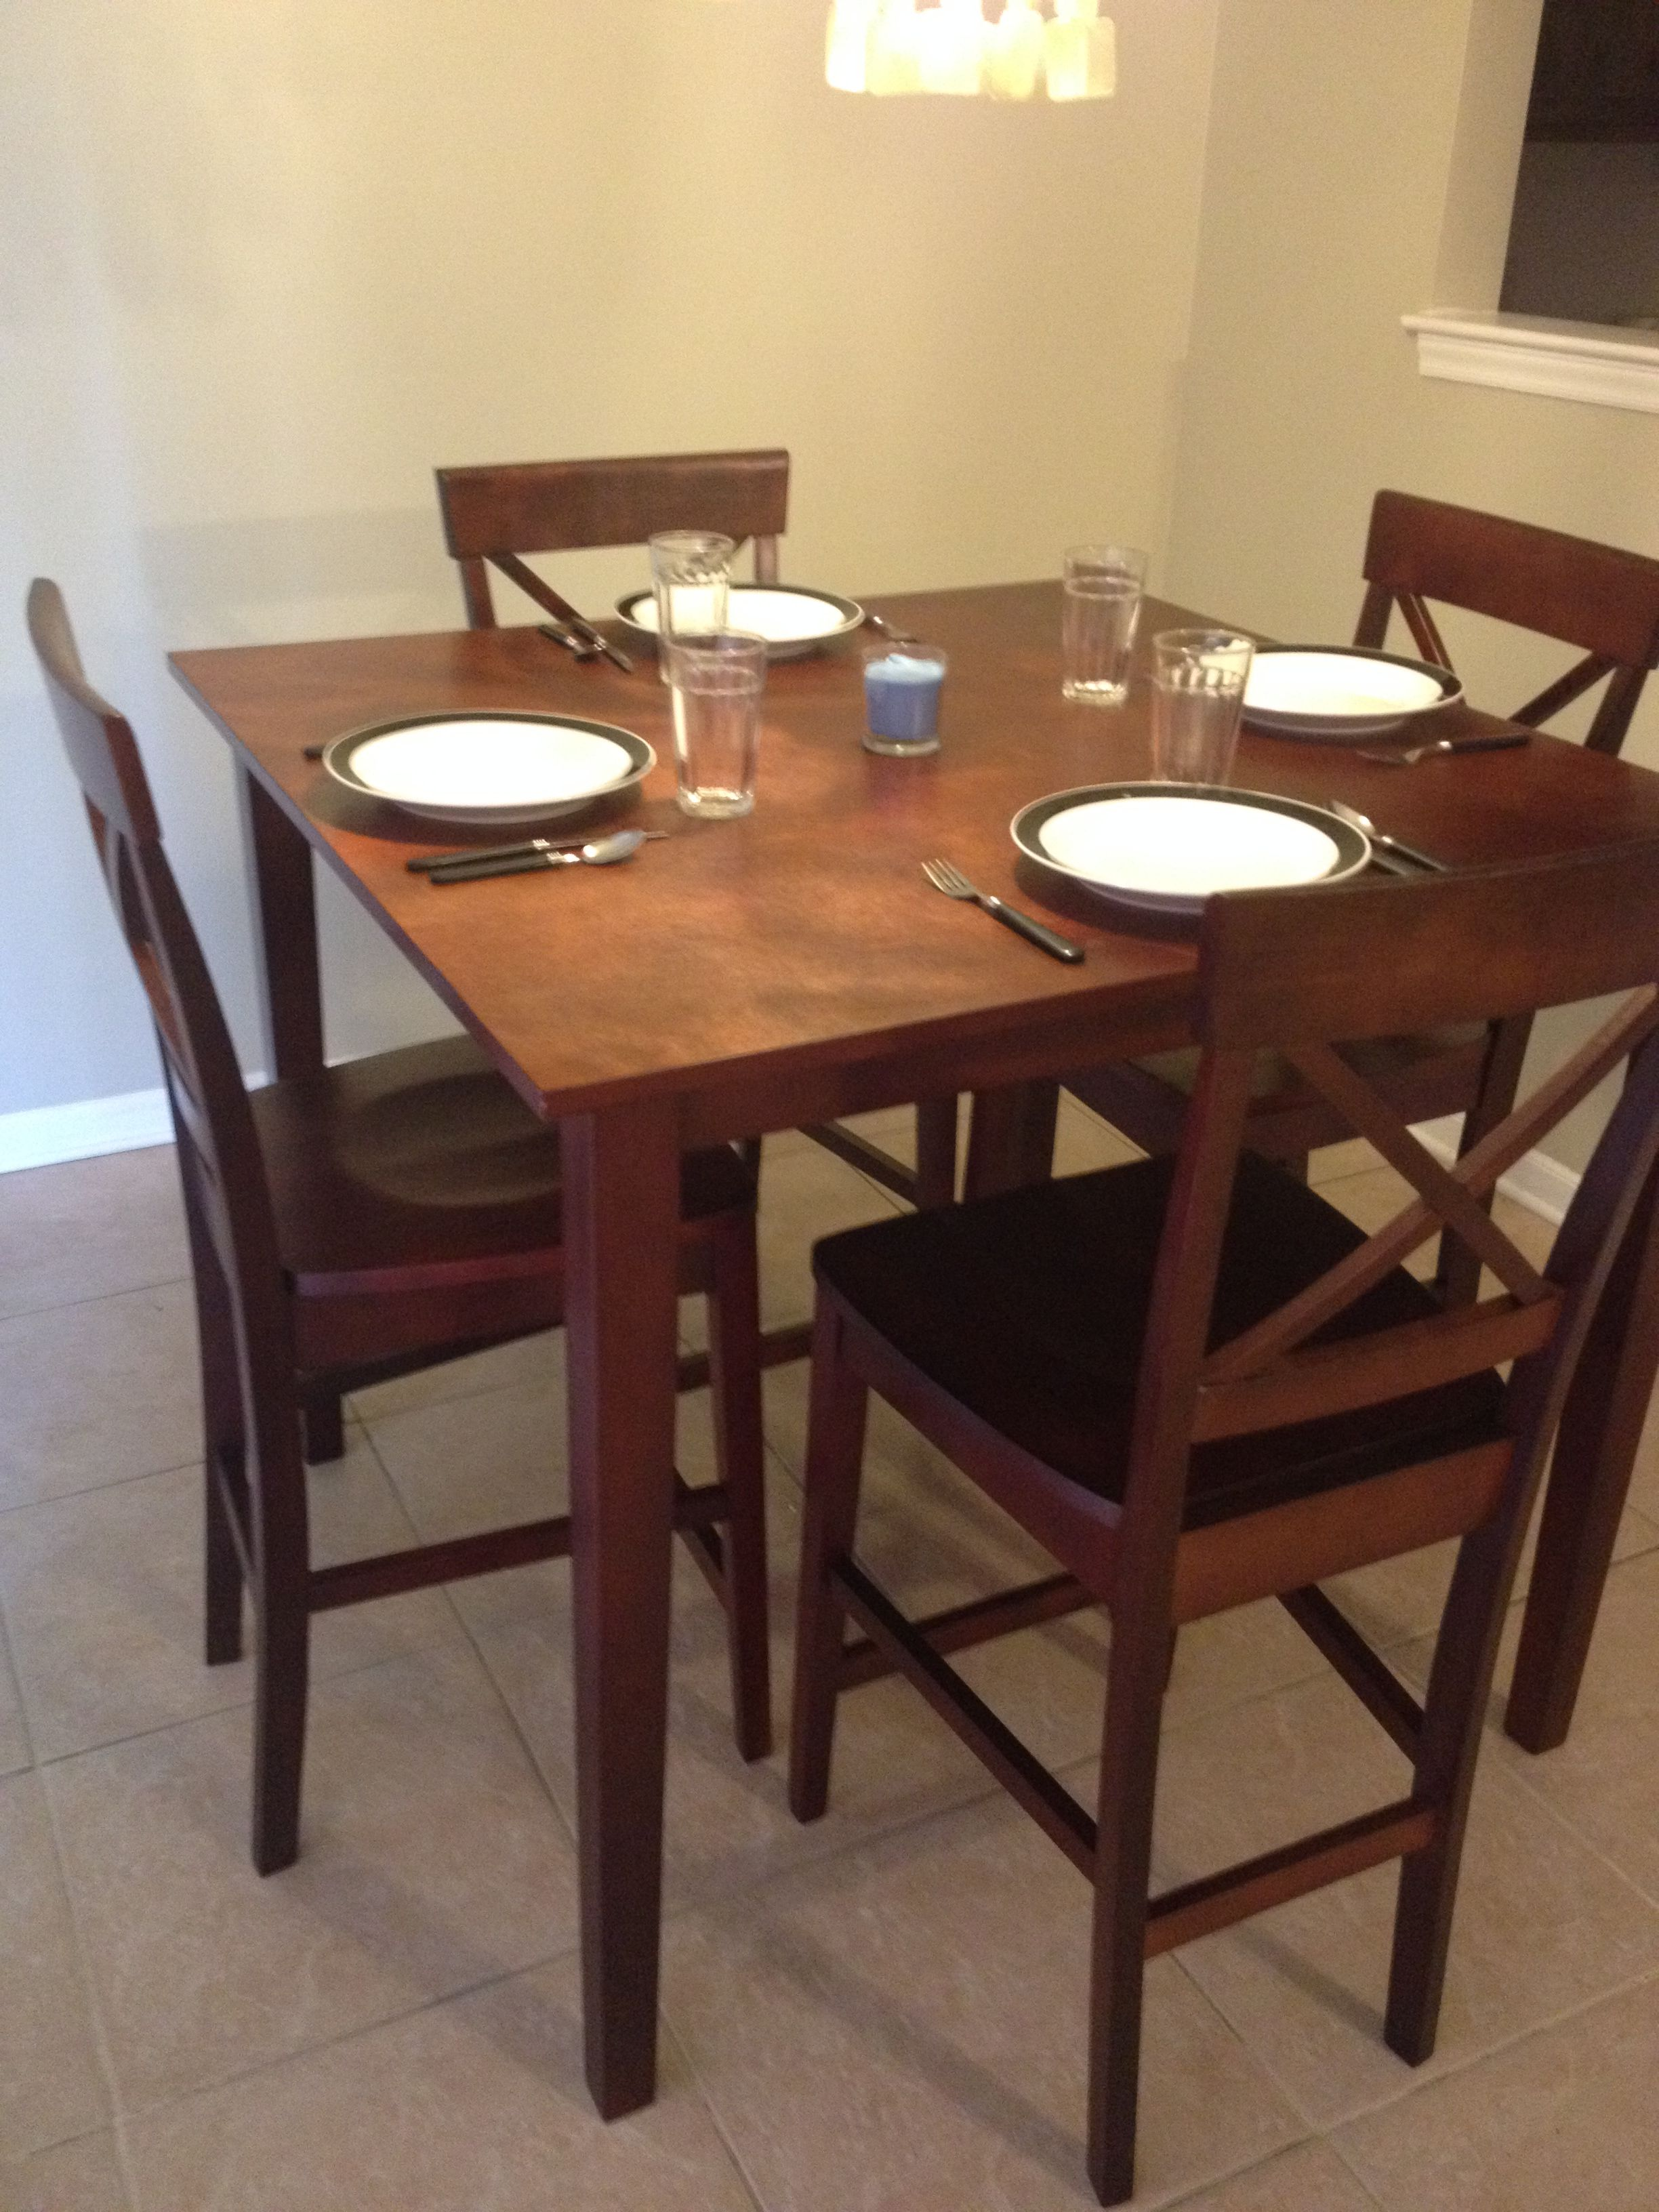 New tall Kitchen table. | Home ideas | Tall kitchen table ...